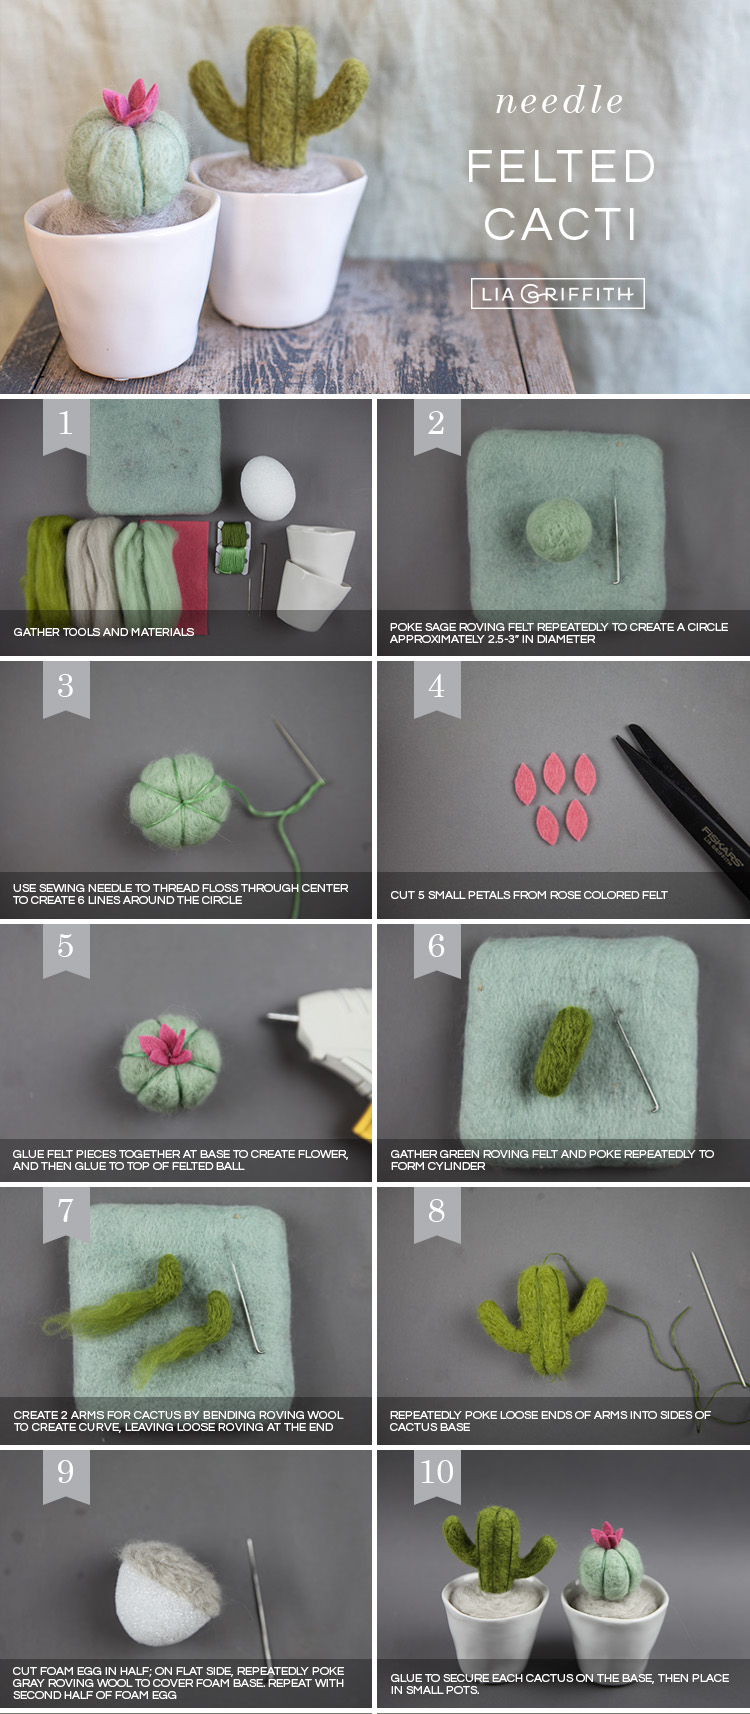 Photo tutorial for needle-felted mini cactus plants by Lia Griffith